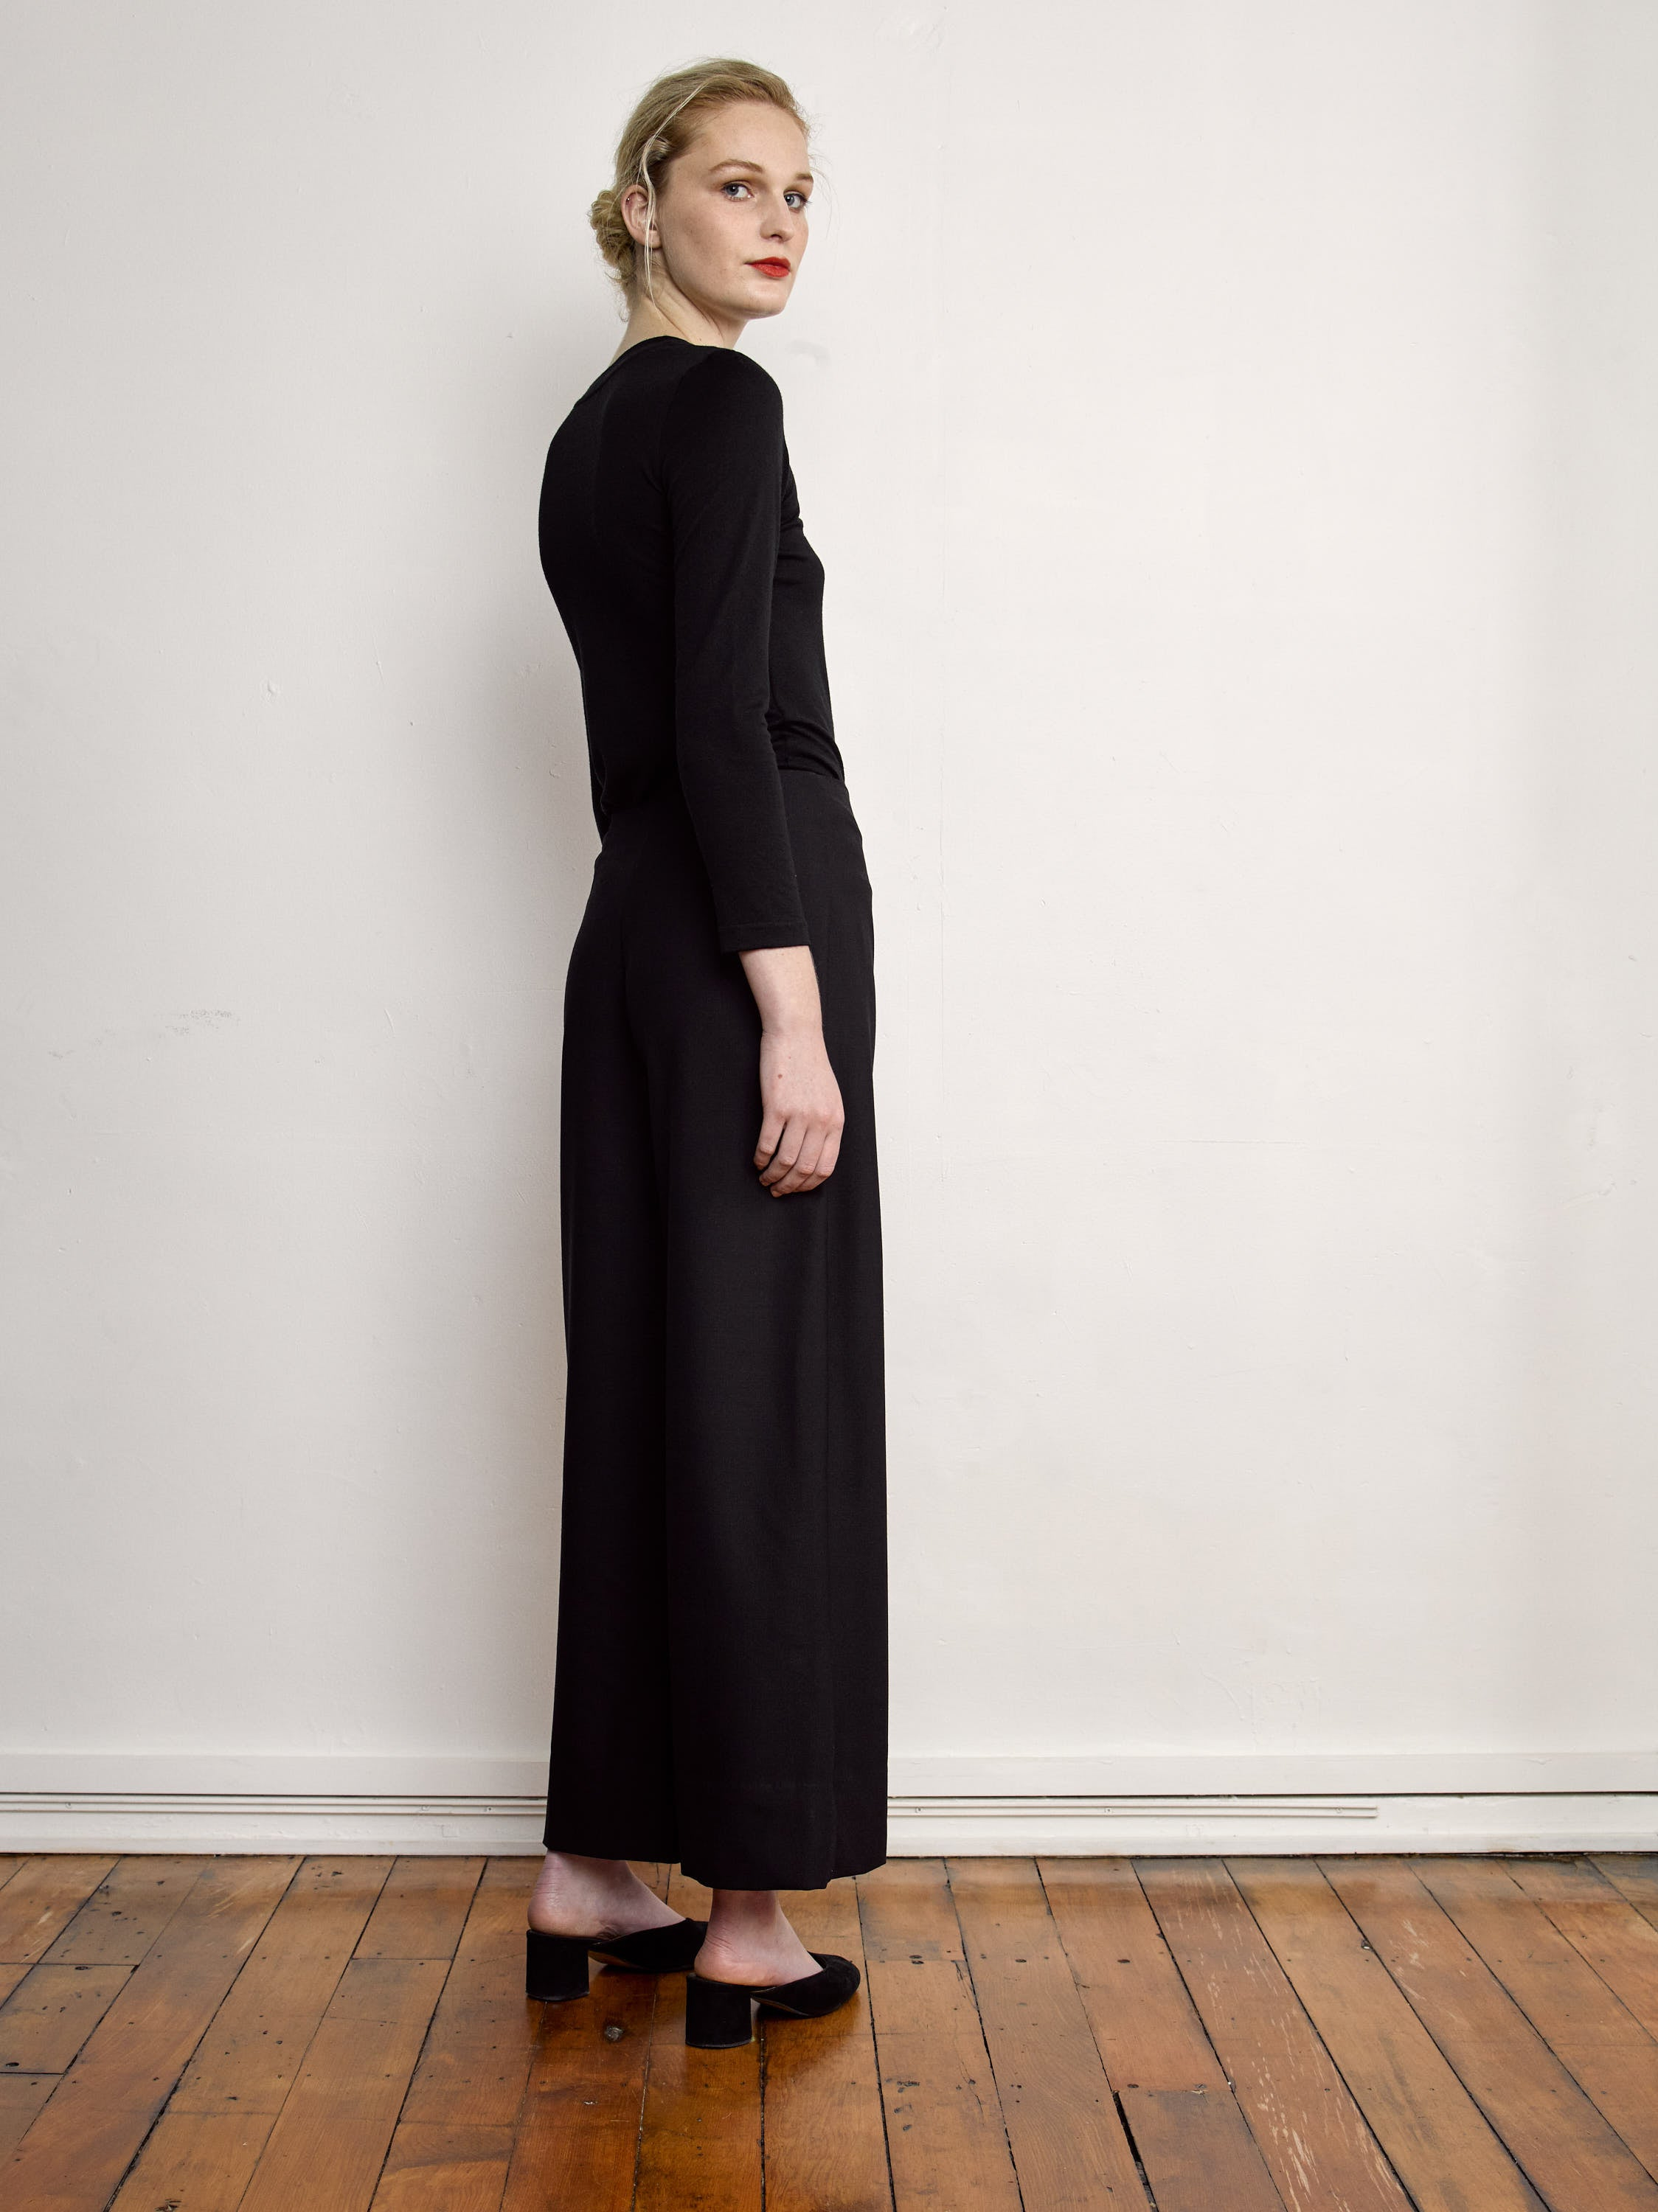 Ya Pant - Black Wool Suiting